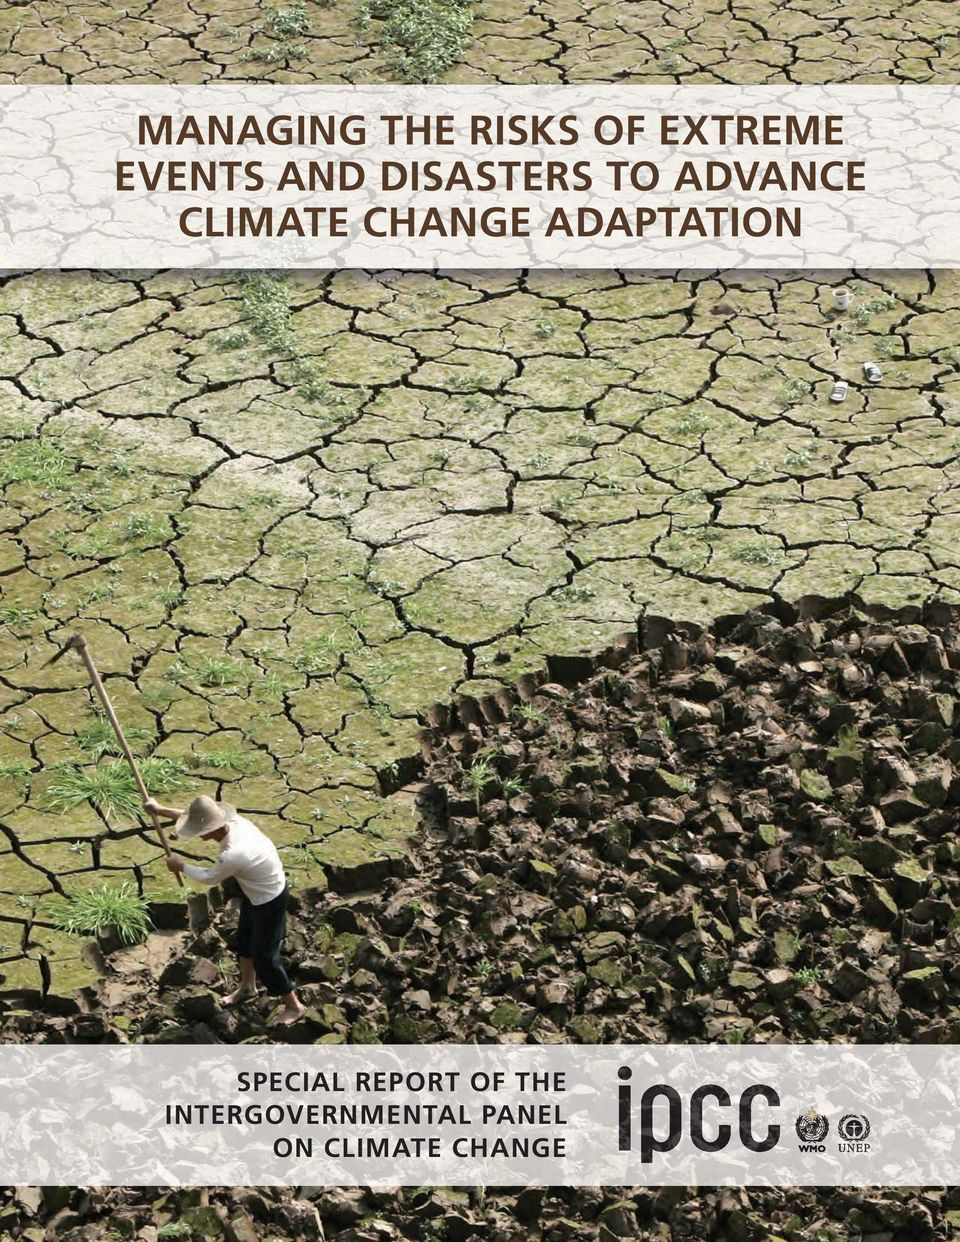 CHANGE ADAPTATION SPECIAL REPORT OF